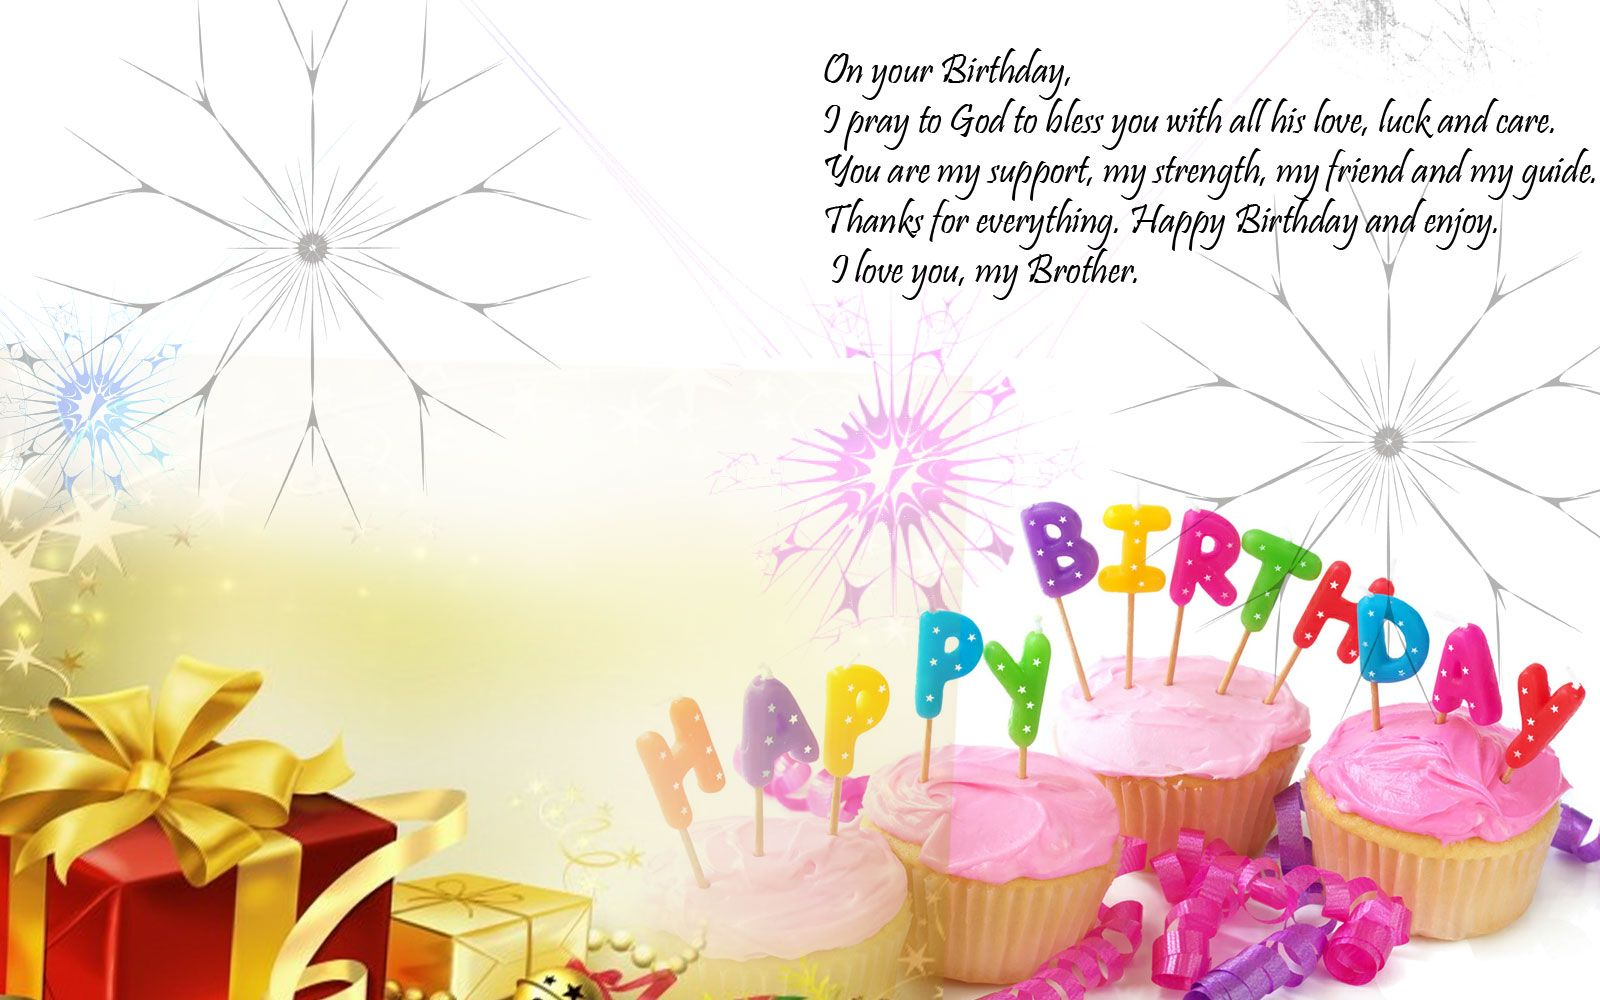 Happy Birthday Wishes Greetings – Happy Birthday Cards for Colleagues